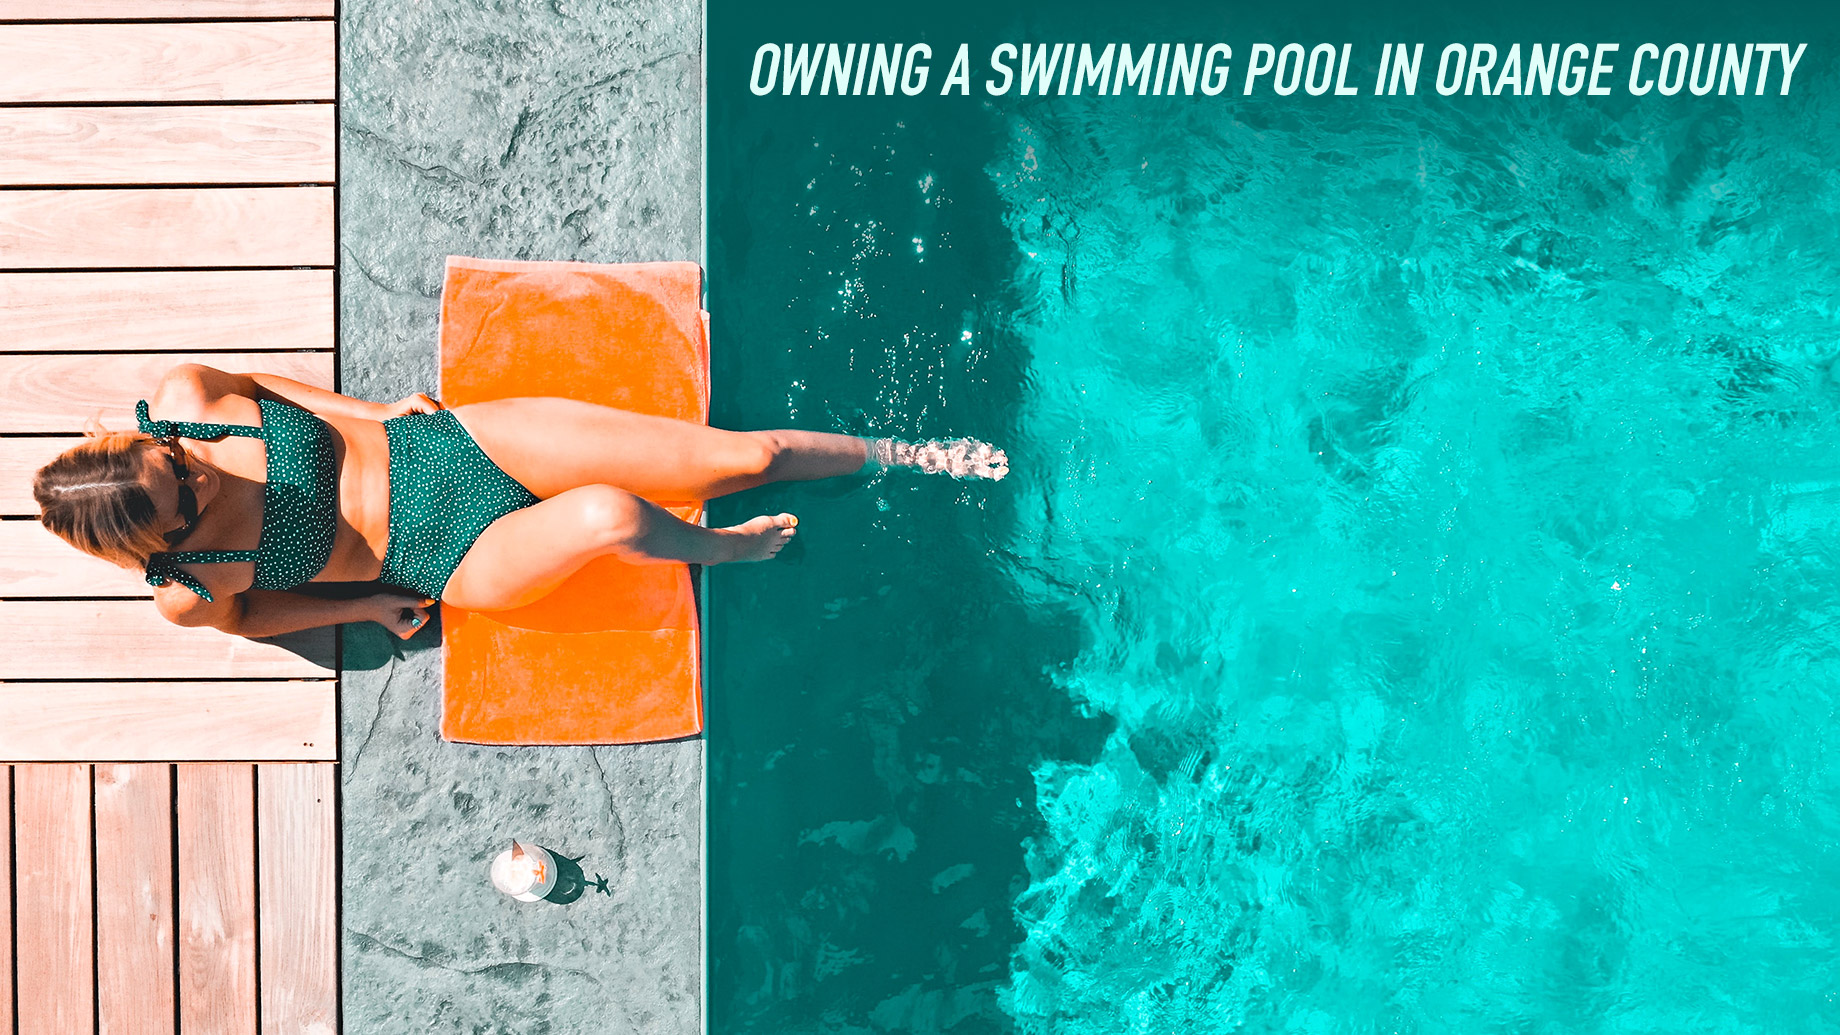 Owning a Swimming Pool in Orange County